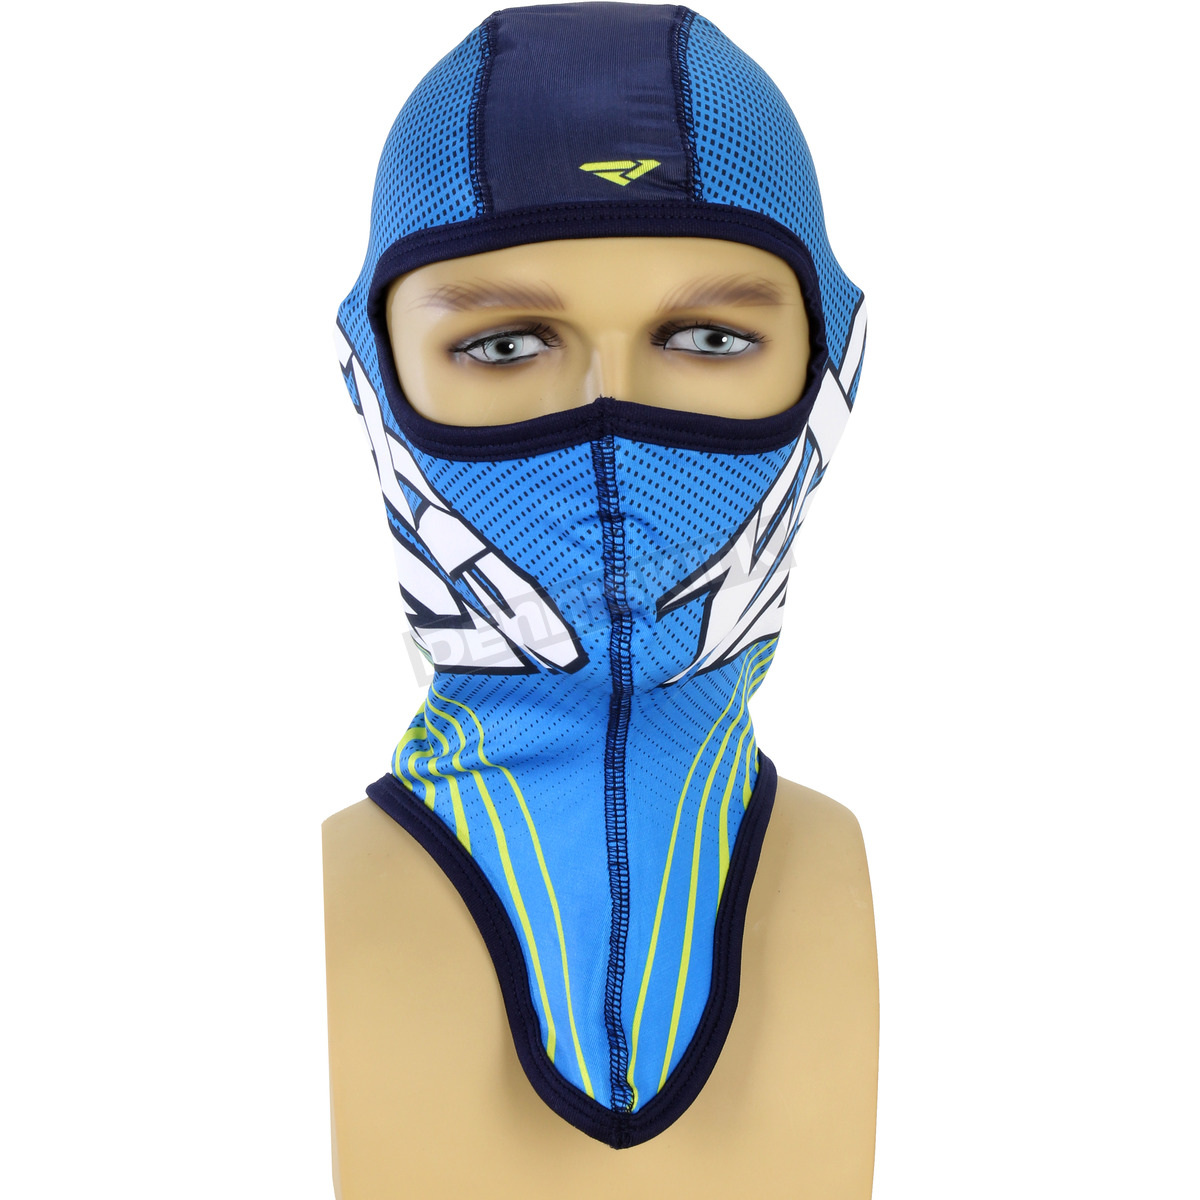 Harley Fxr Turbo: FXR Racing Blue/Hi Vis Turbo Balaclava